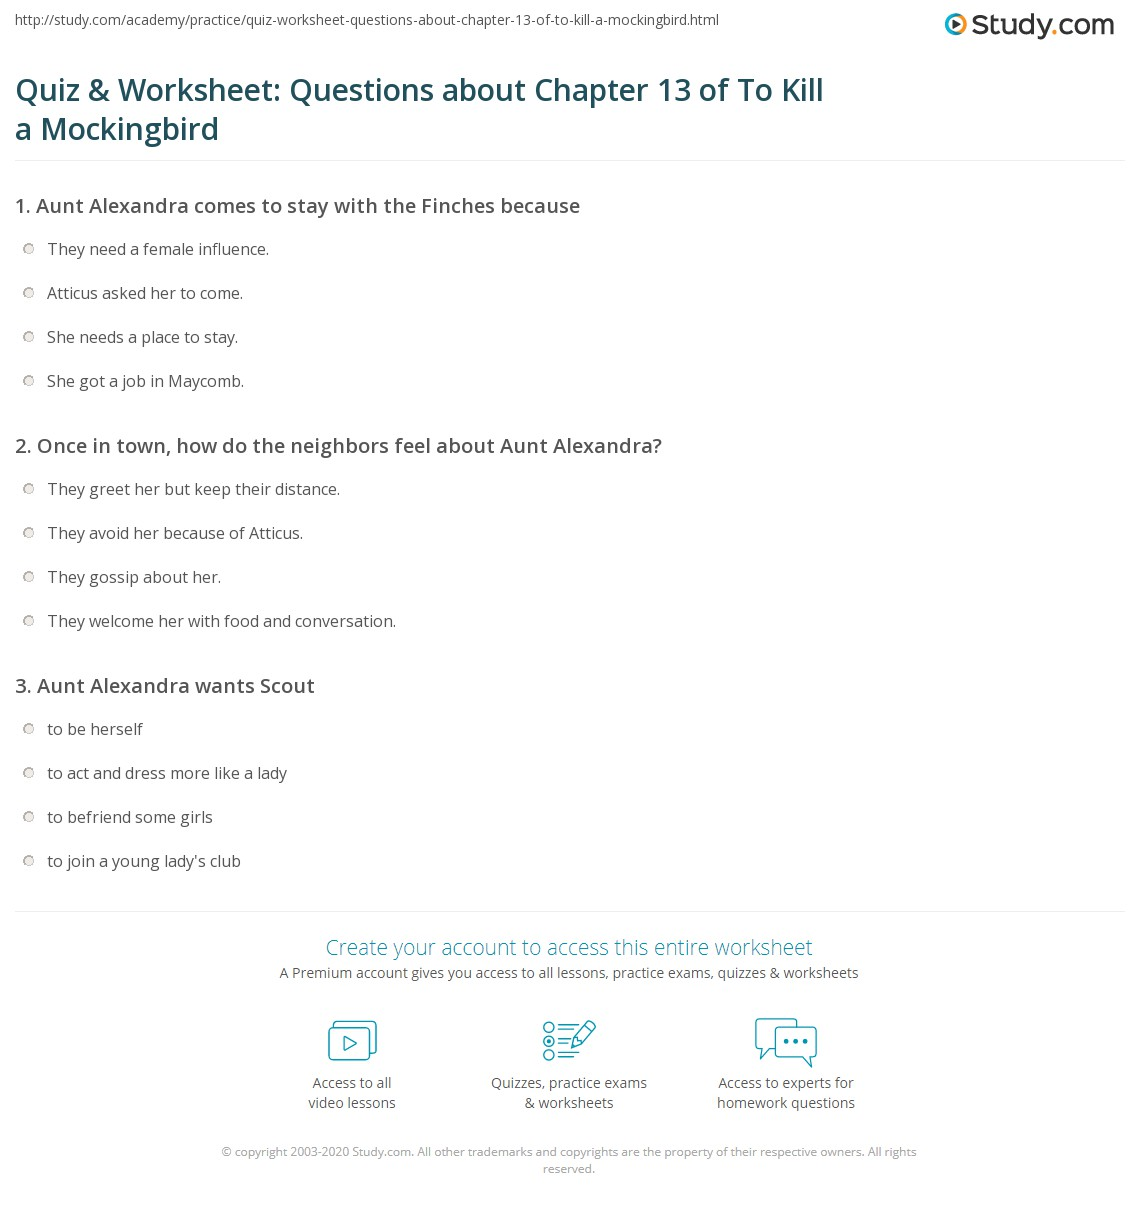 Quiz Worksheet Questions About Chapter 13 Of To Kill A